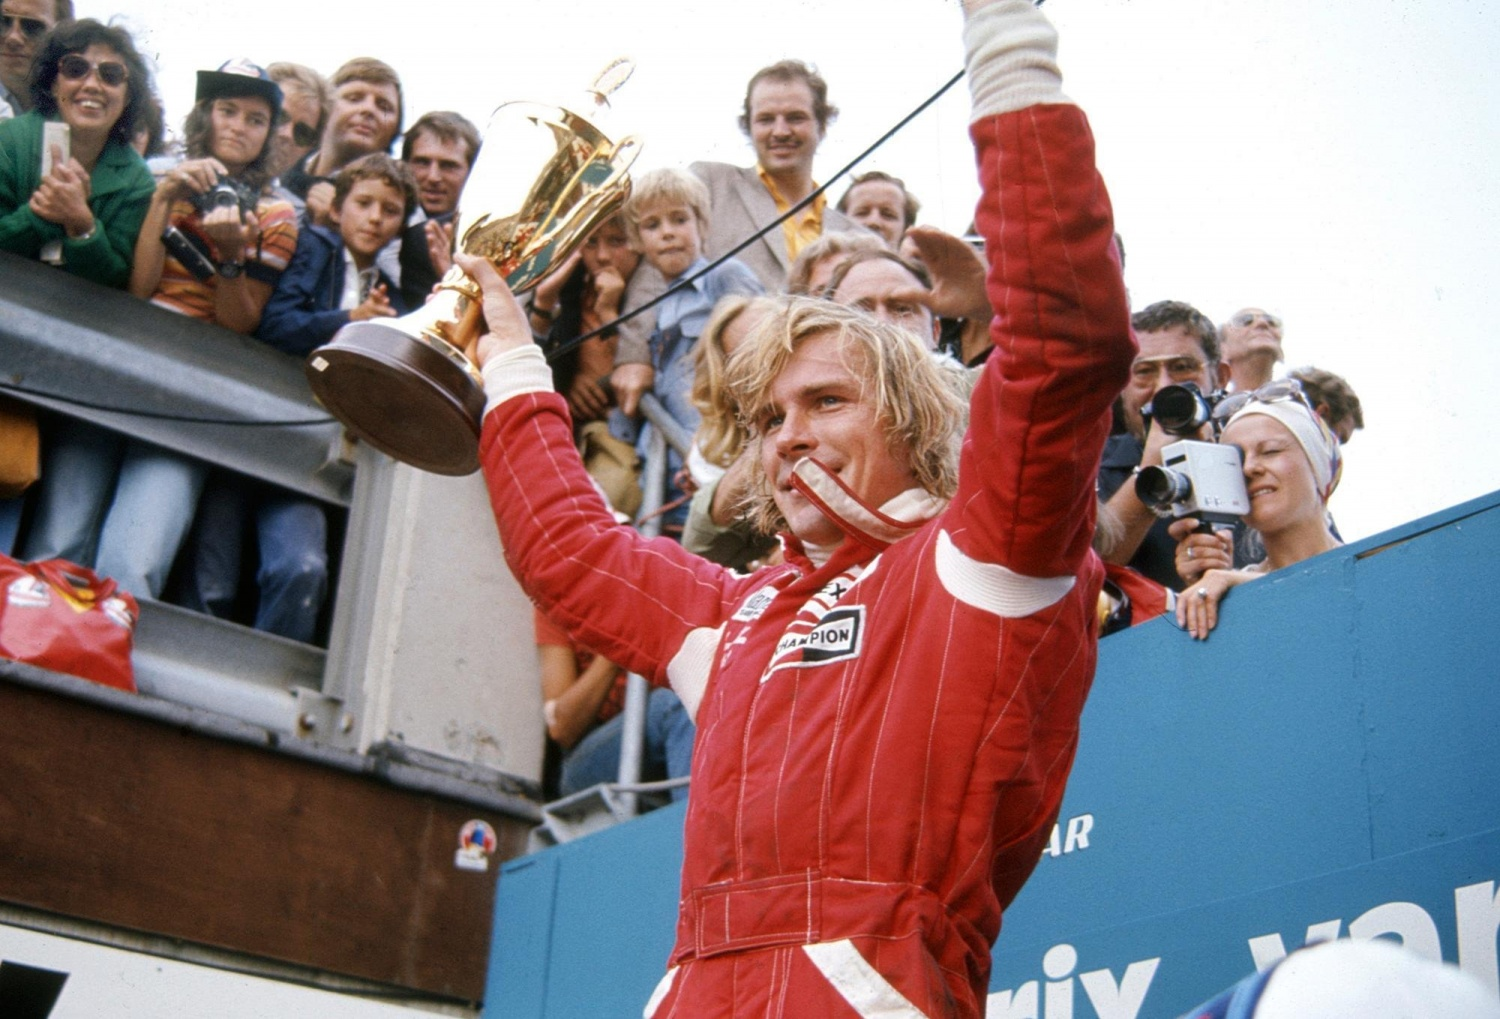 James Hunt, Freddie's father, won the F1 World Championship in 1976 for McLaren. Source: James Hunt Foundation